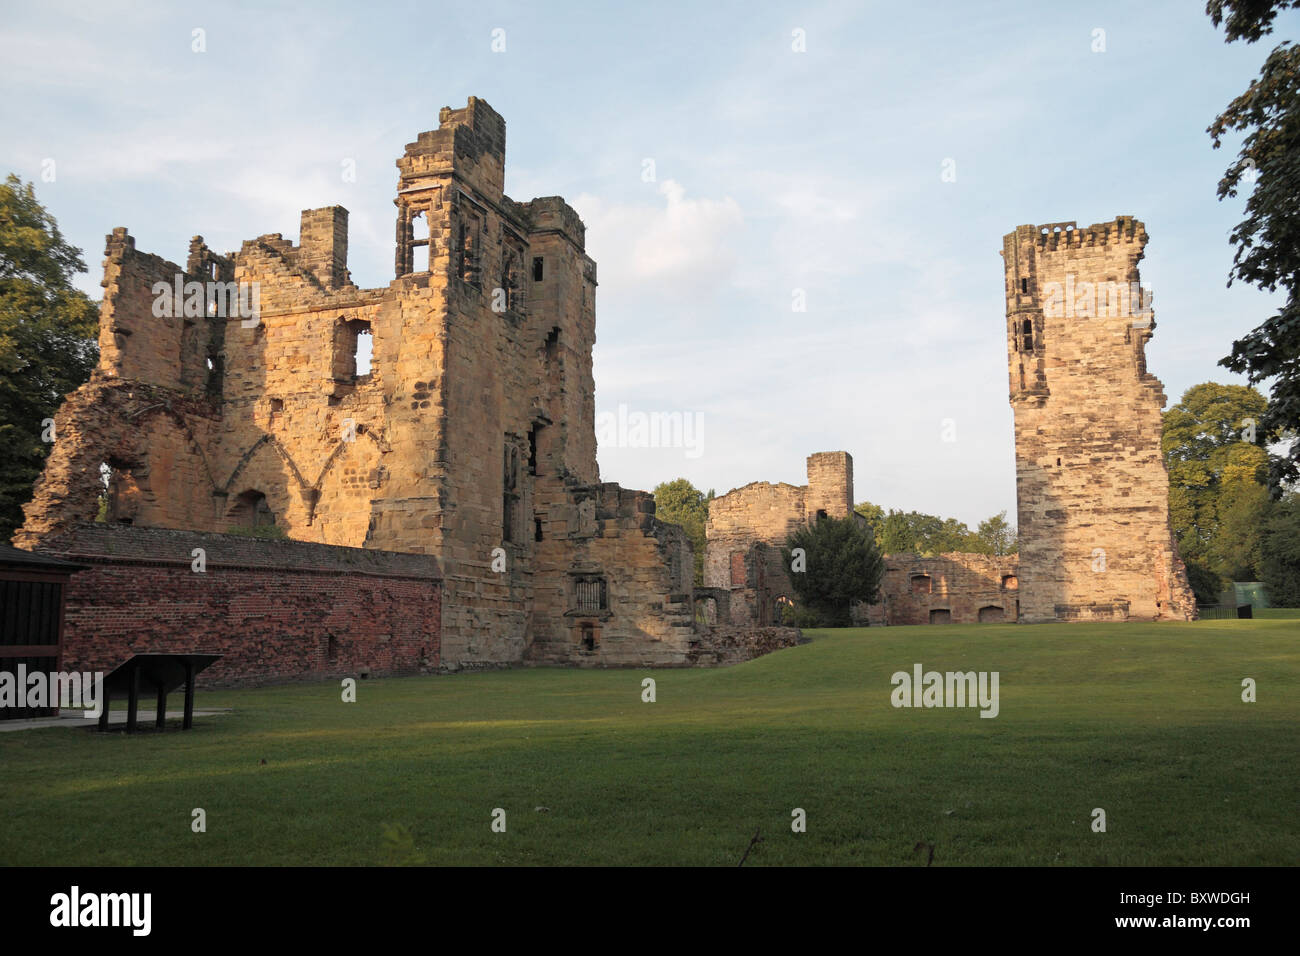 Evening view of the ruins of Ashby Castle, Ashby de la Zouch, Leicestershire, England. - Stock Image